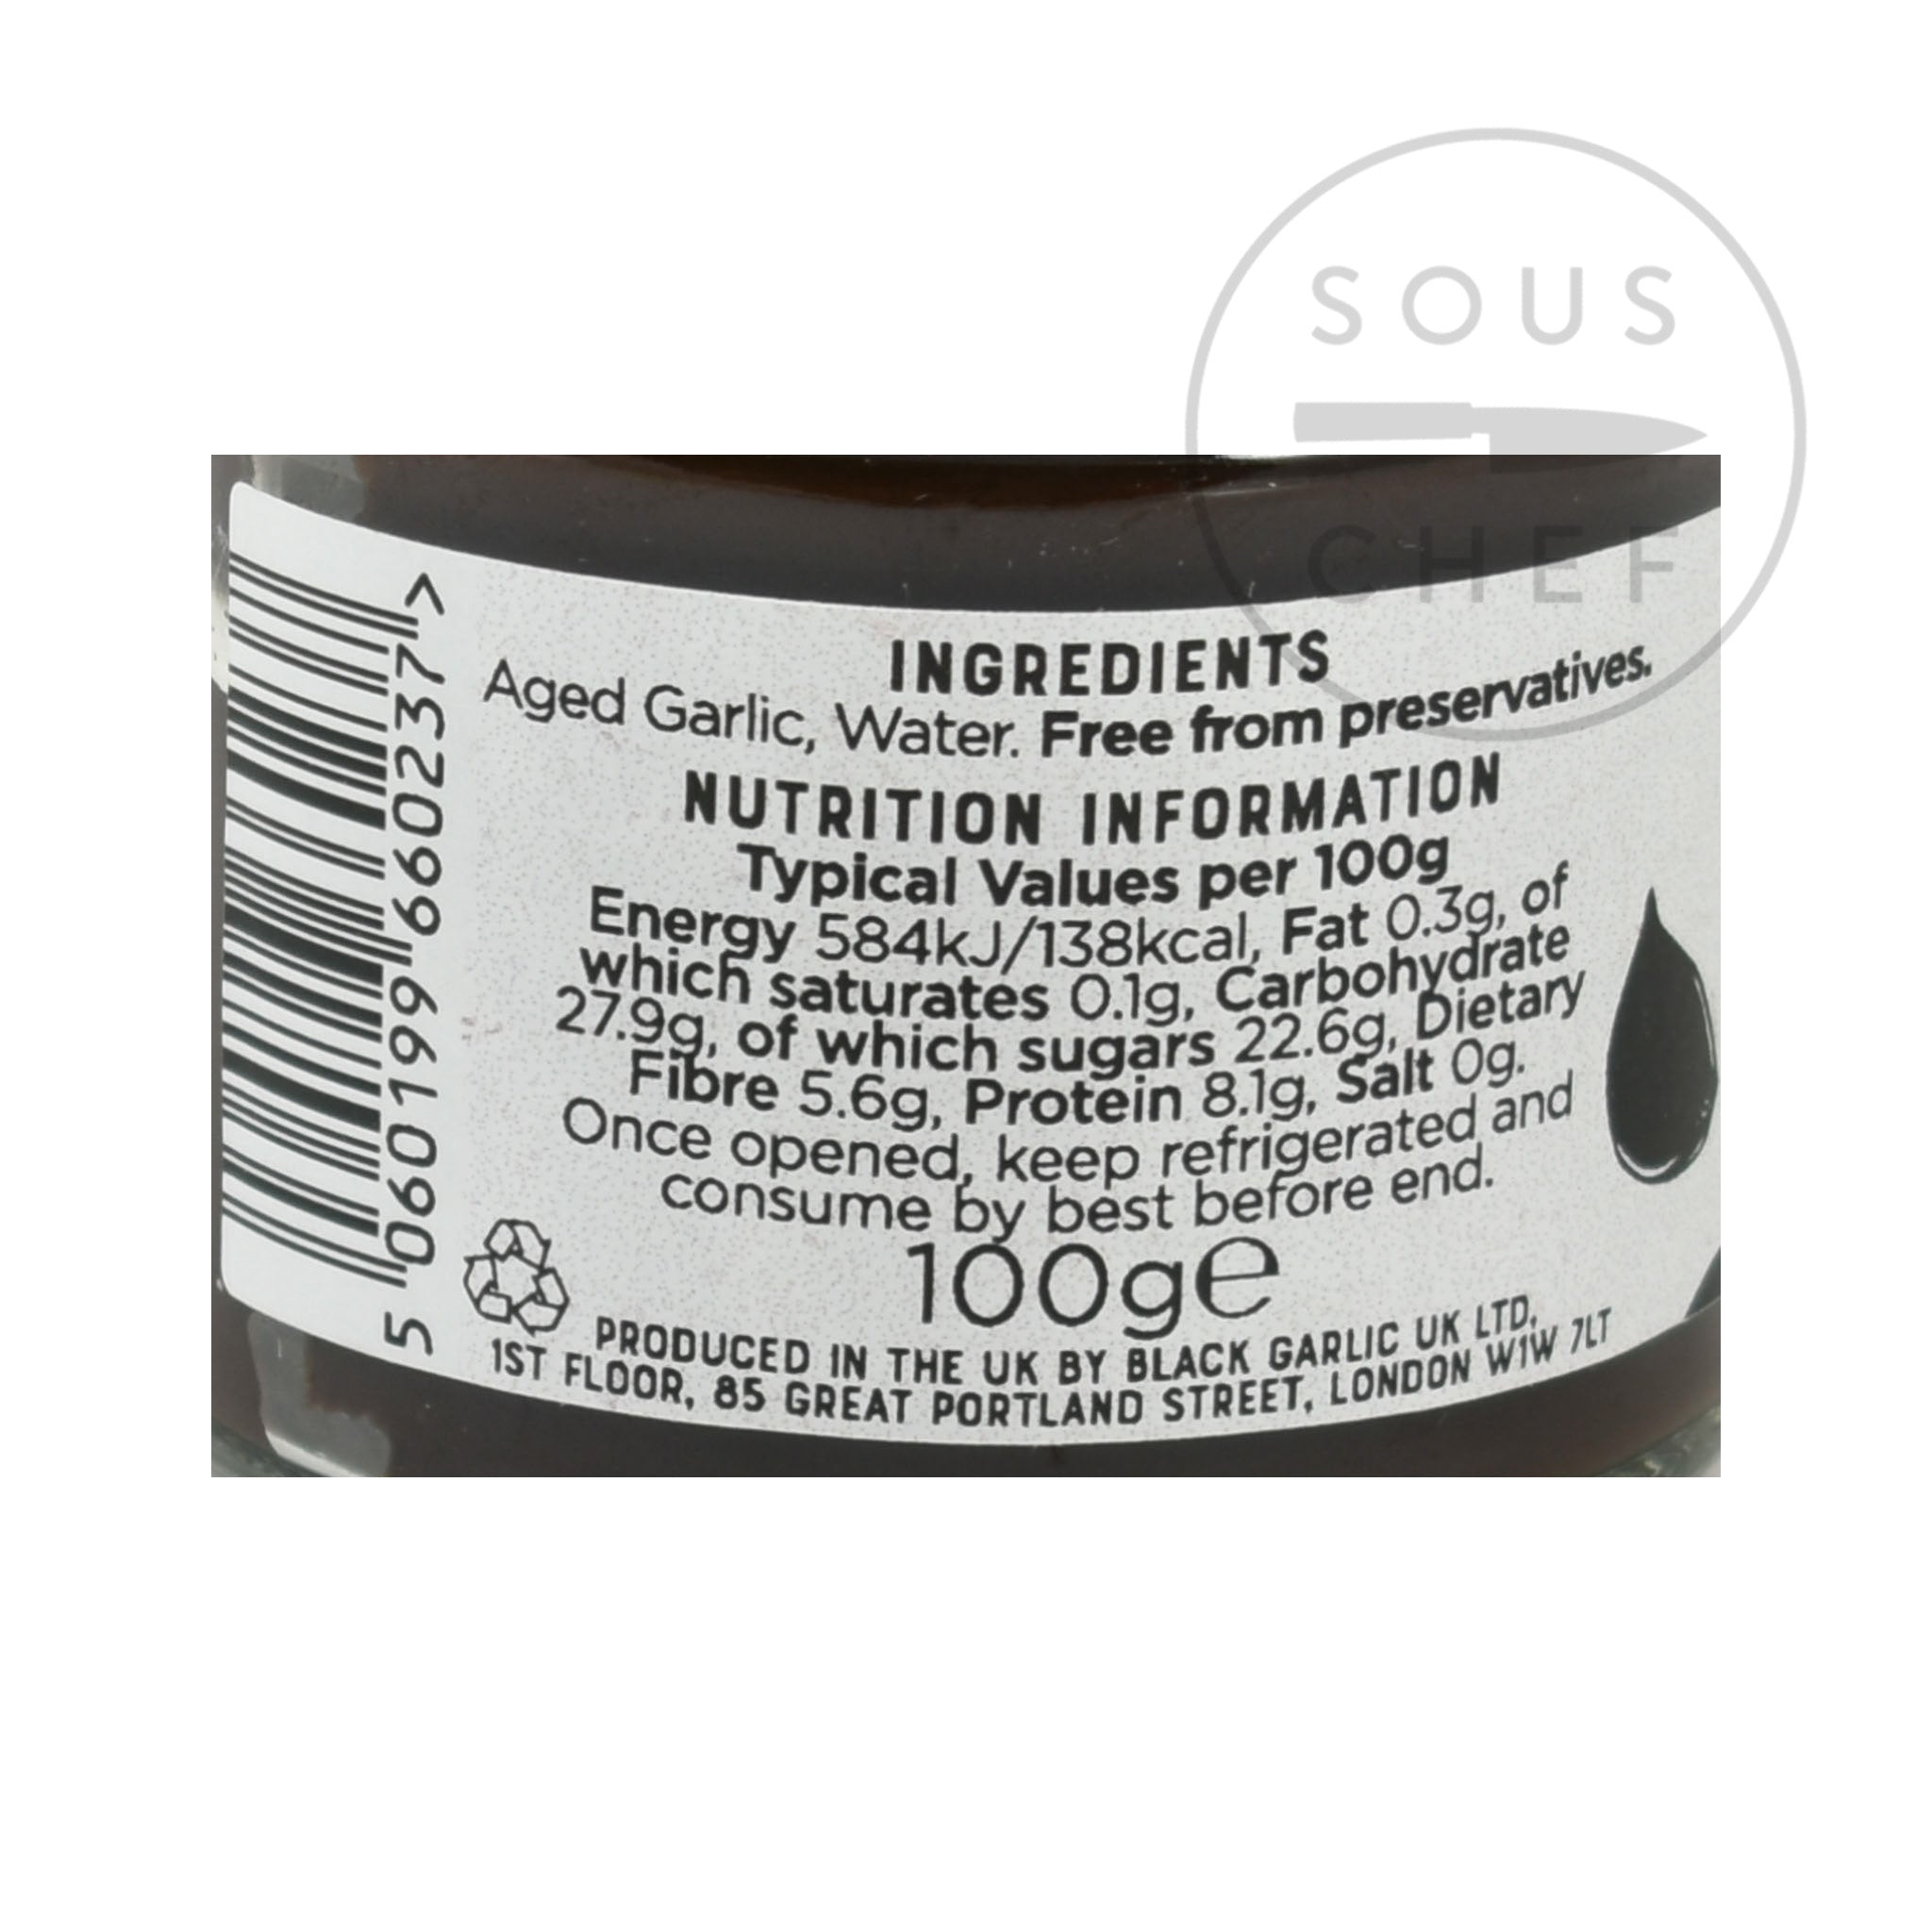 Balsajo Black Garlic Paste 100g Ingredients Pickled & Preserved Vegetables Ingredients Nutritional Information